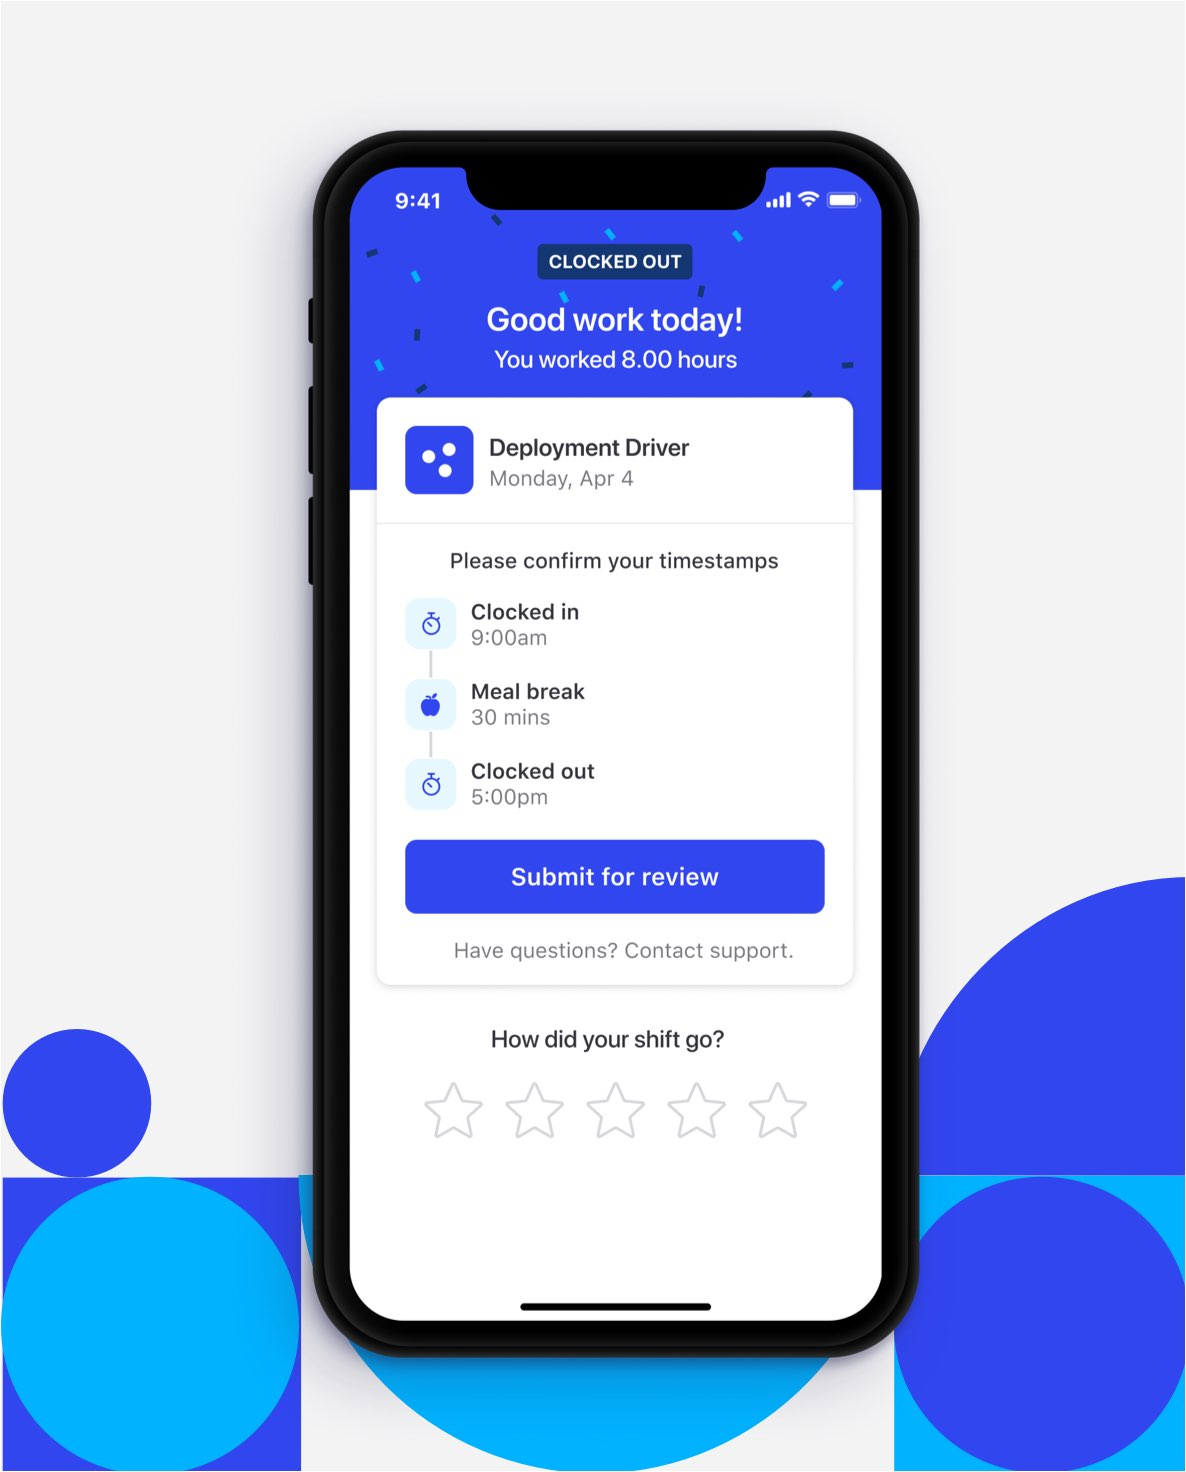 The Bluecrew app gives gig workers the ability to search for jobs and pick shifts they want to work